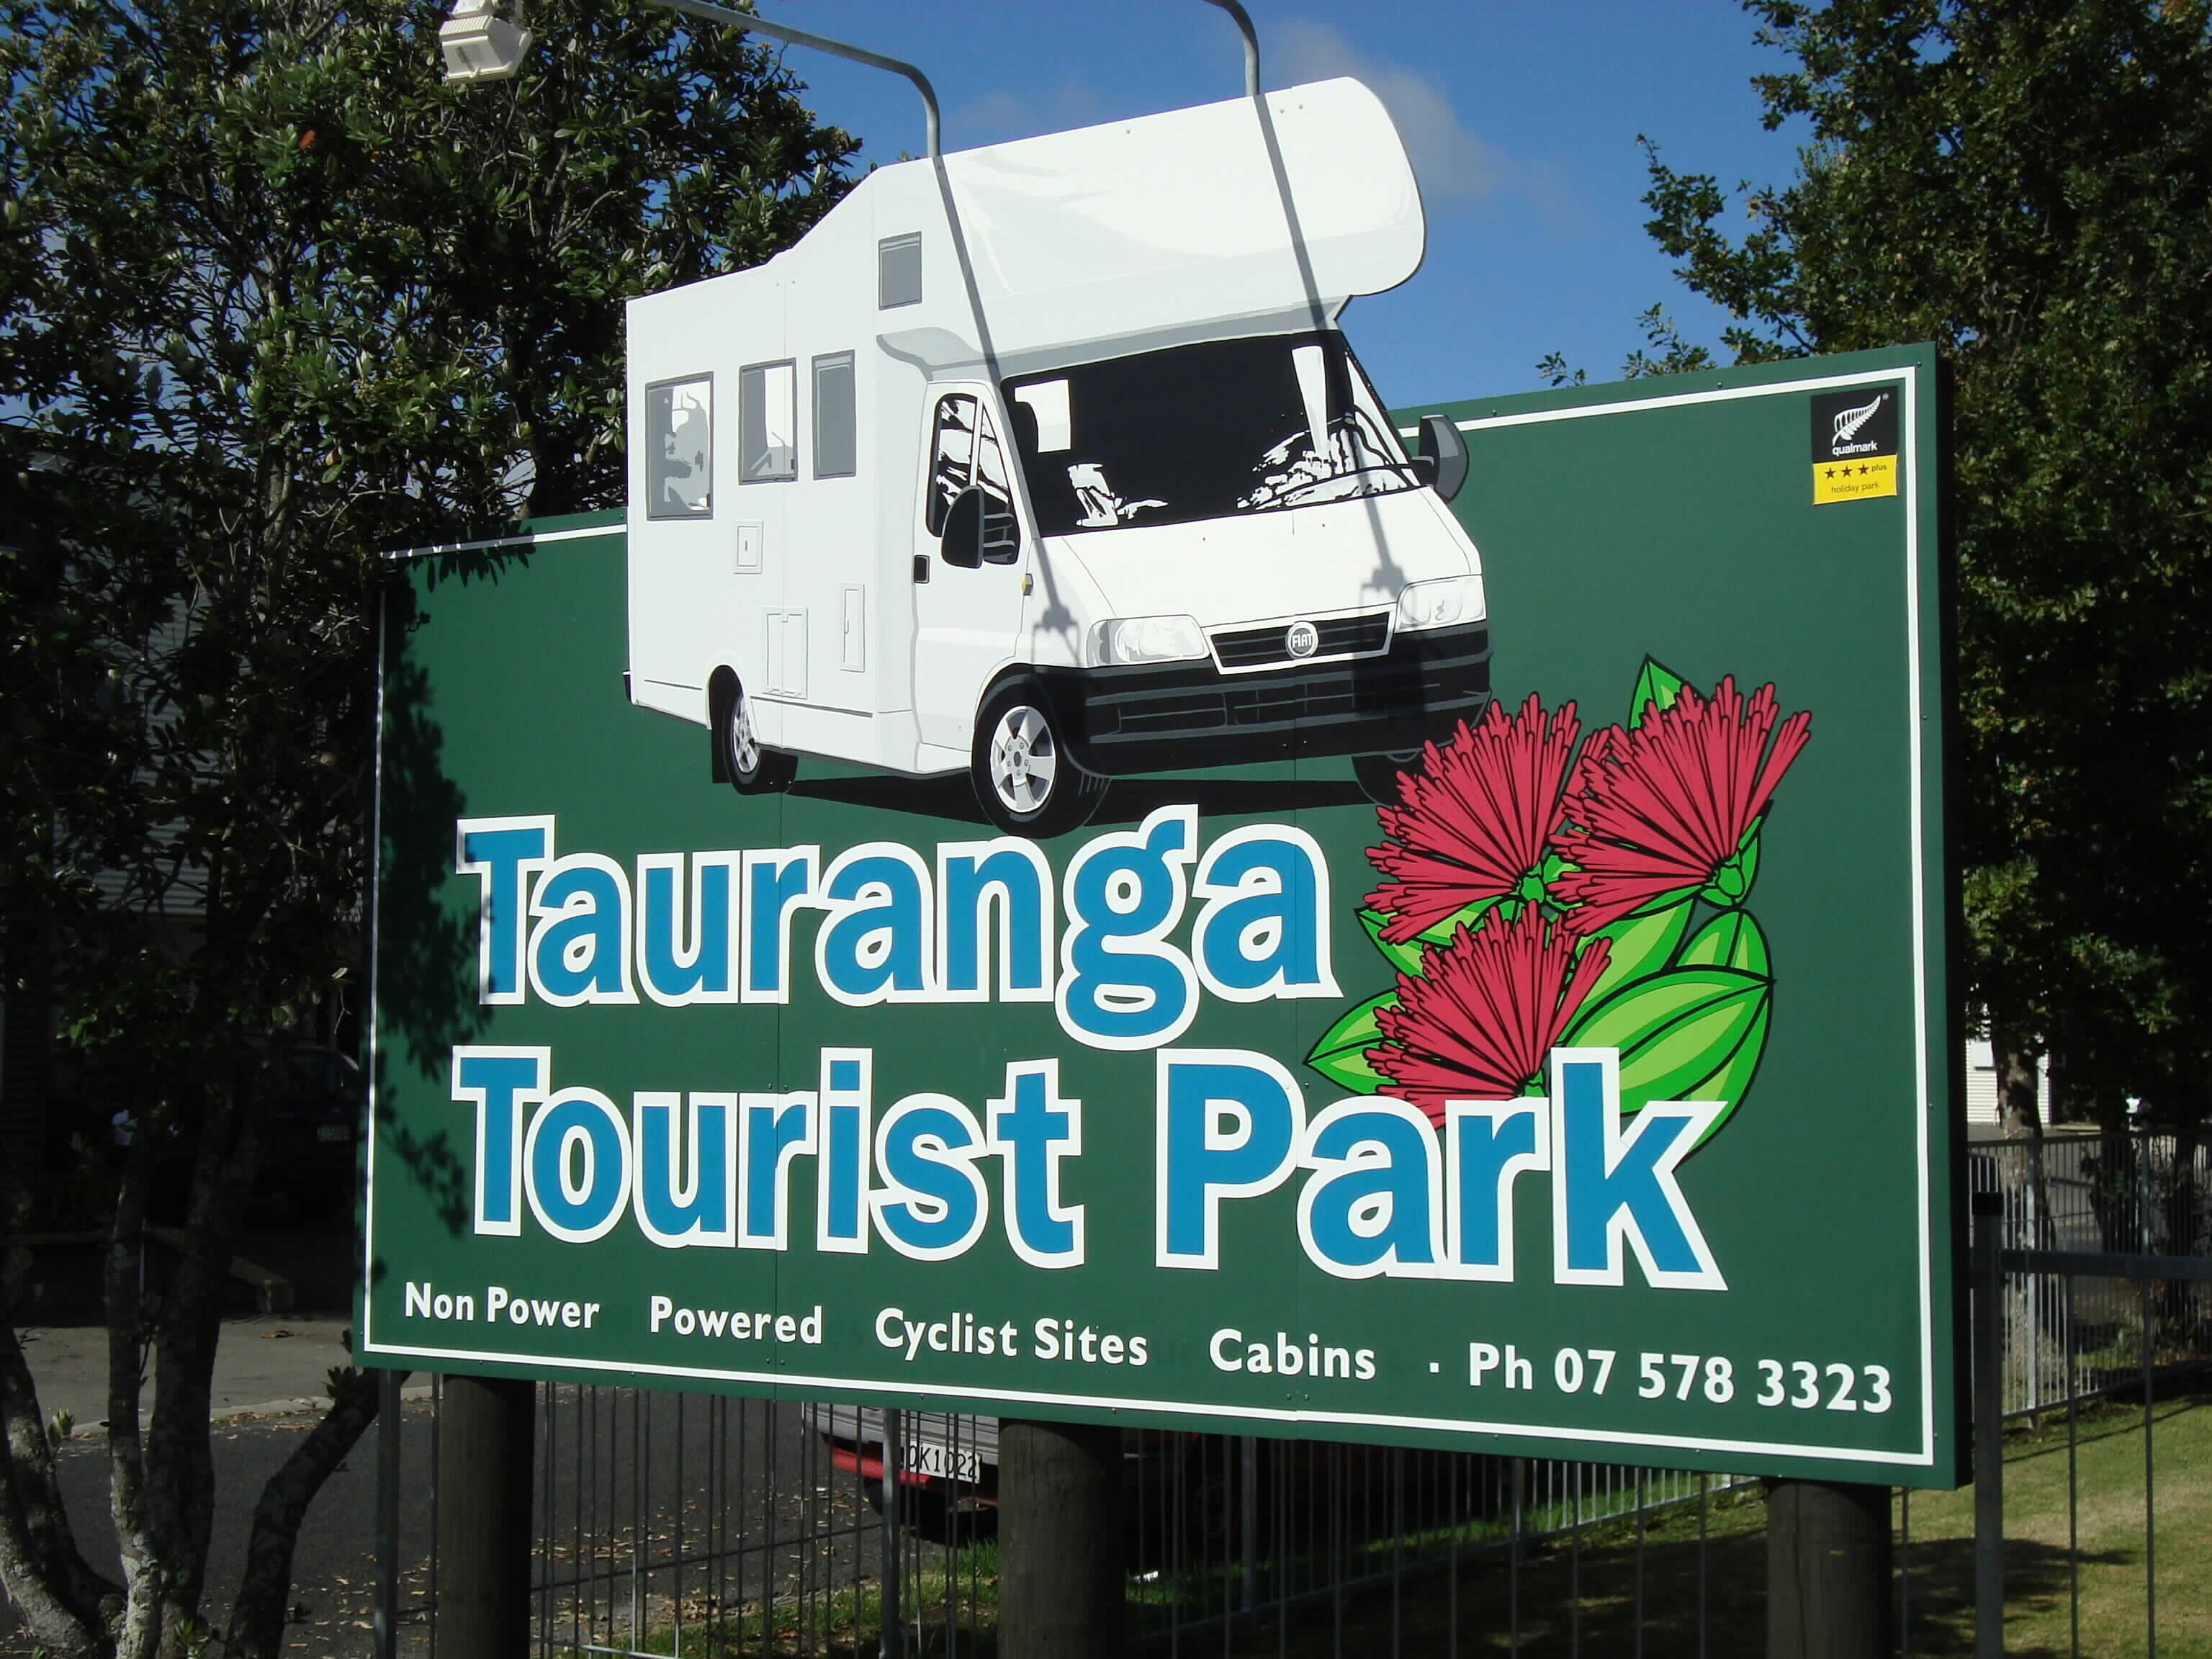 Tauranga Tourist Park Main Entry Sign